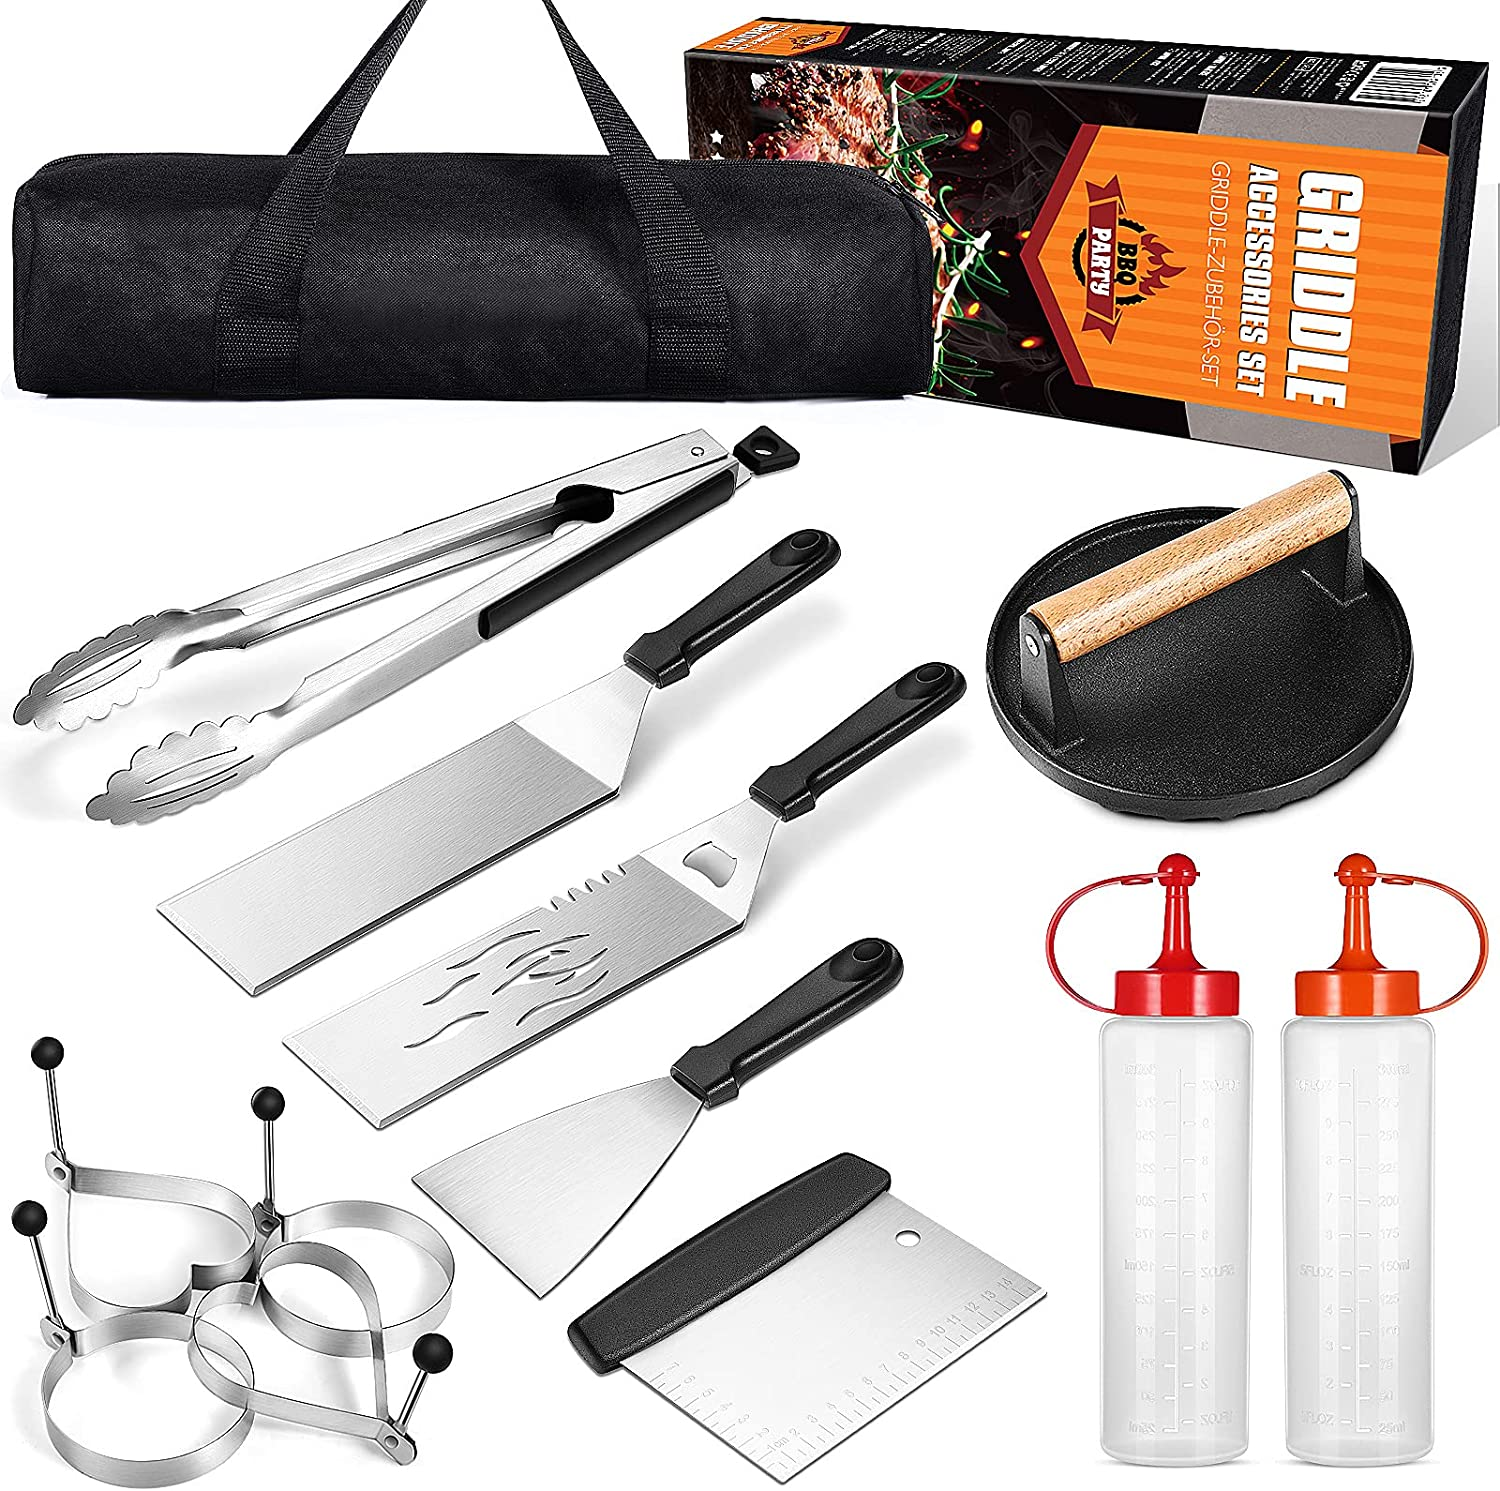 Save money VALICLUD Be super welcome 13pcs Barbecue Tool Sets Grill Accessories Outdoor for